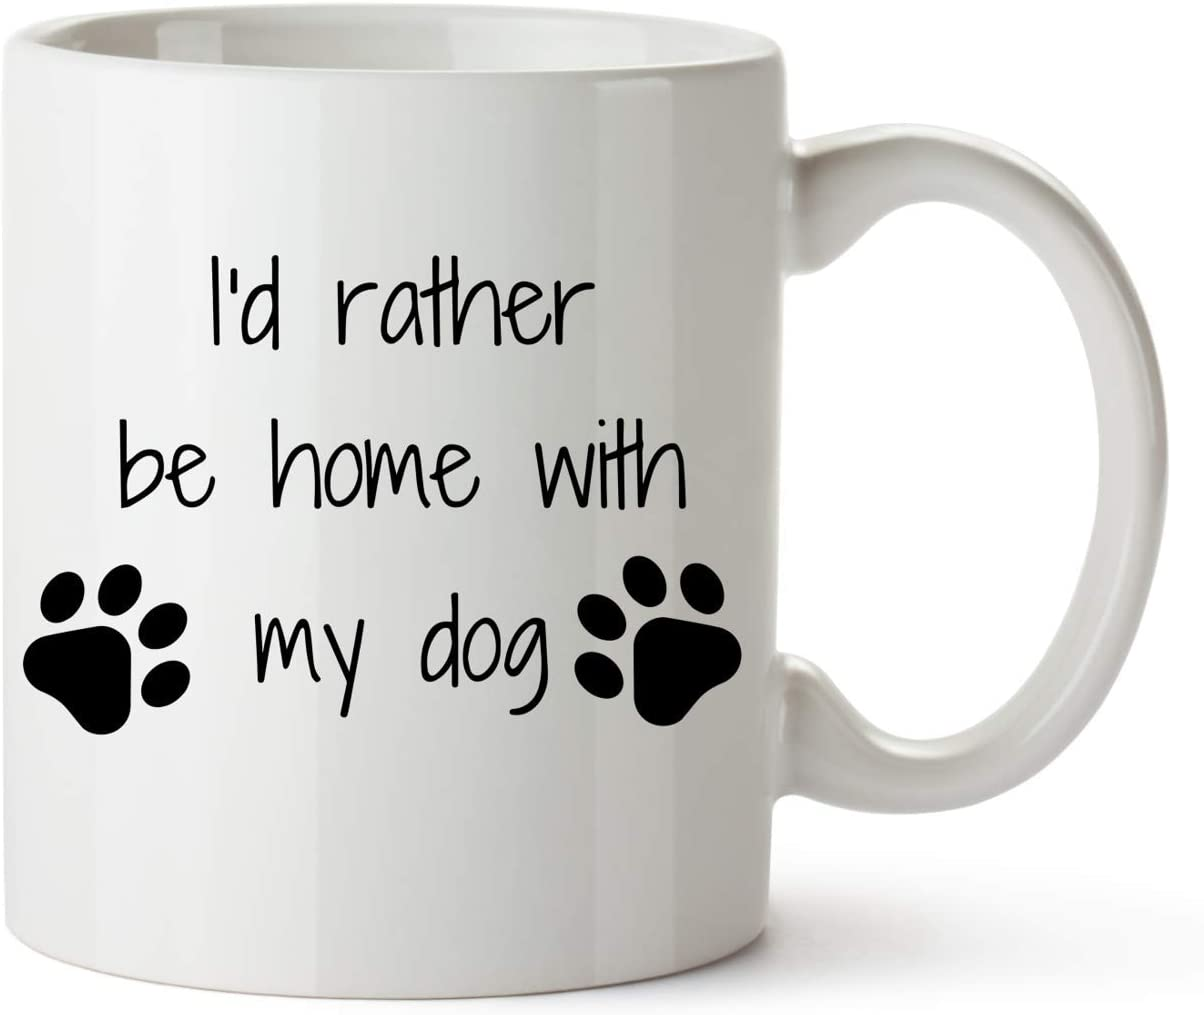 Funny Dog Mug I'd Rather Be Home With My Dog 11oz Coffee Cup Gifts for Her Birthday Christmas Holiday Valentine's Day Dog Mom